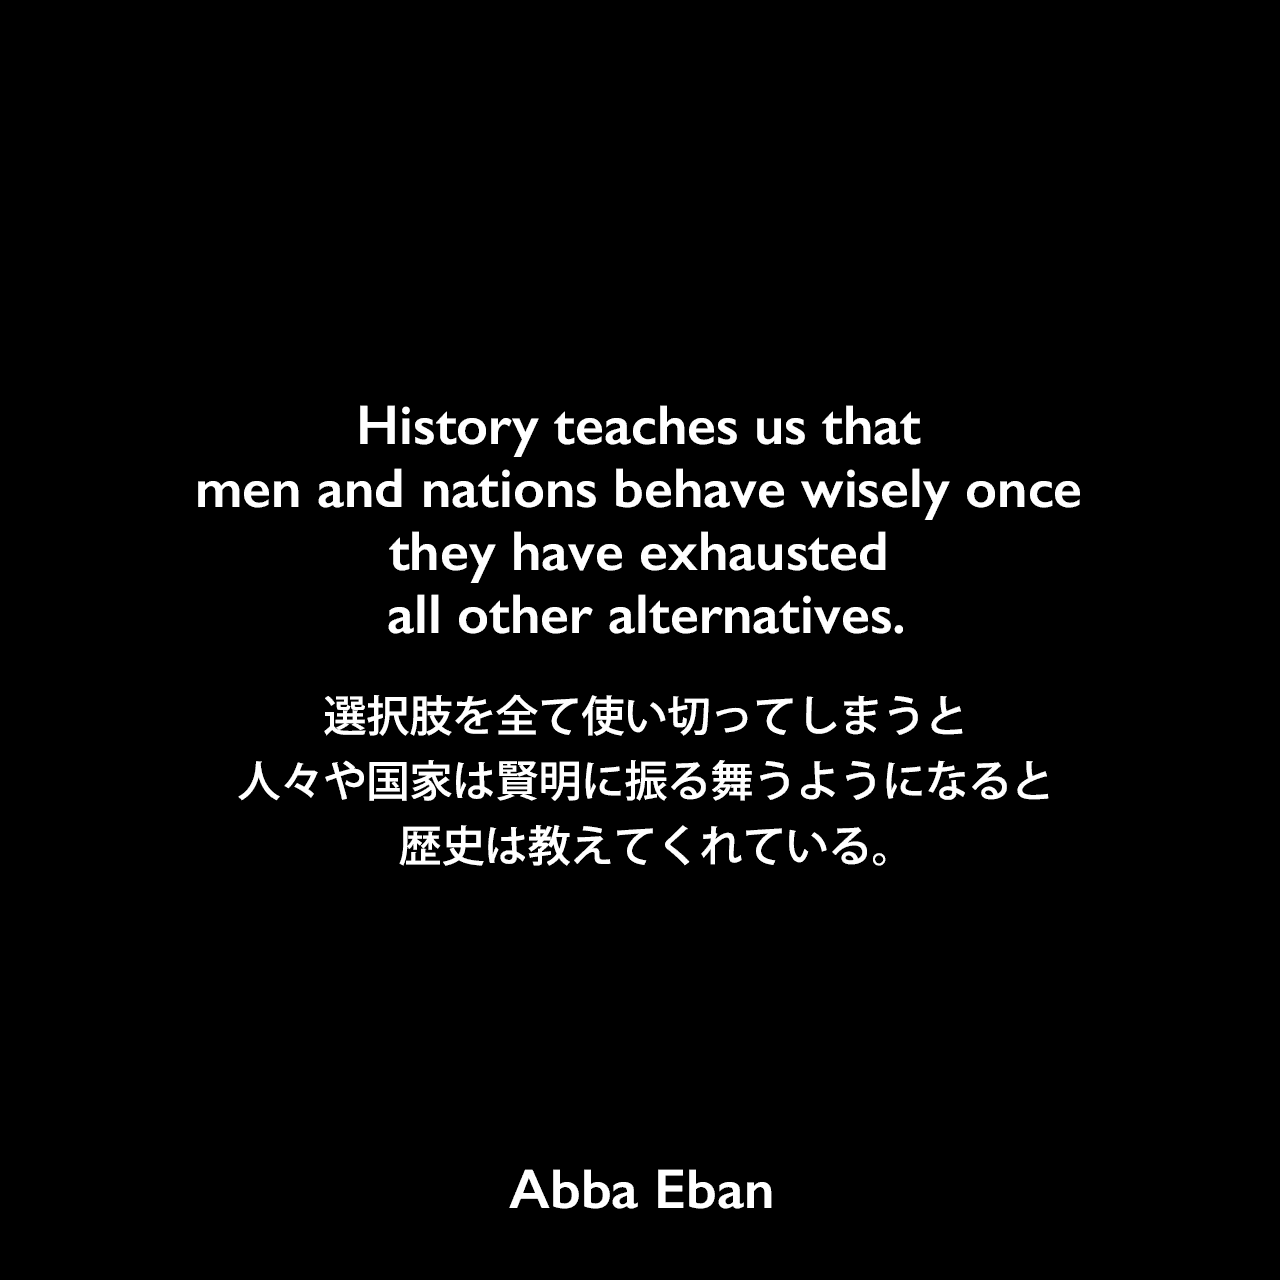 History teaches us that men and nations behave wisely once they have exhausted all other alternatives.選択肢を全て使い切ってしまうと、人々や国家は賢明に振る舞うようになると歴史は教えてくれている。Abba Eban